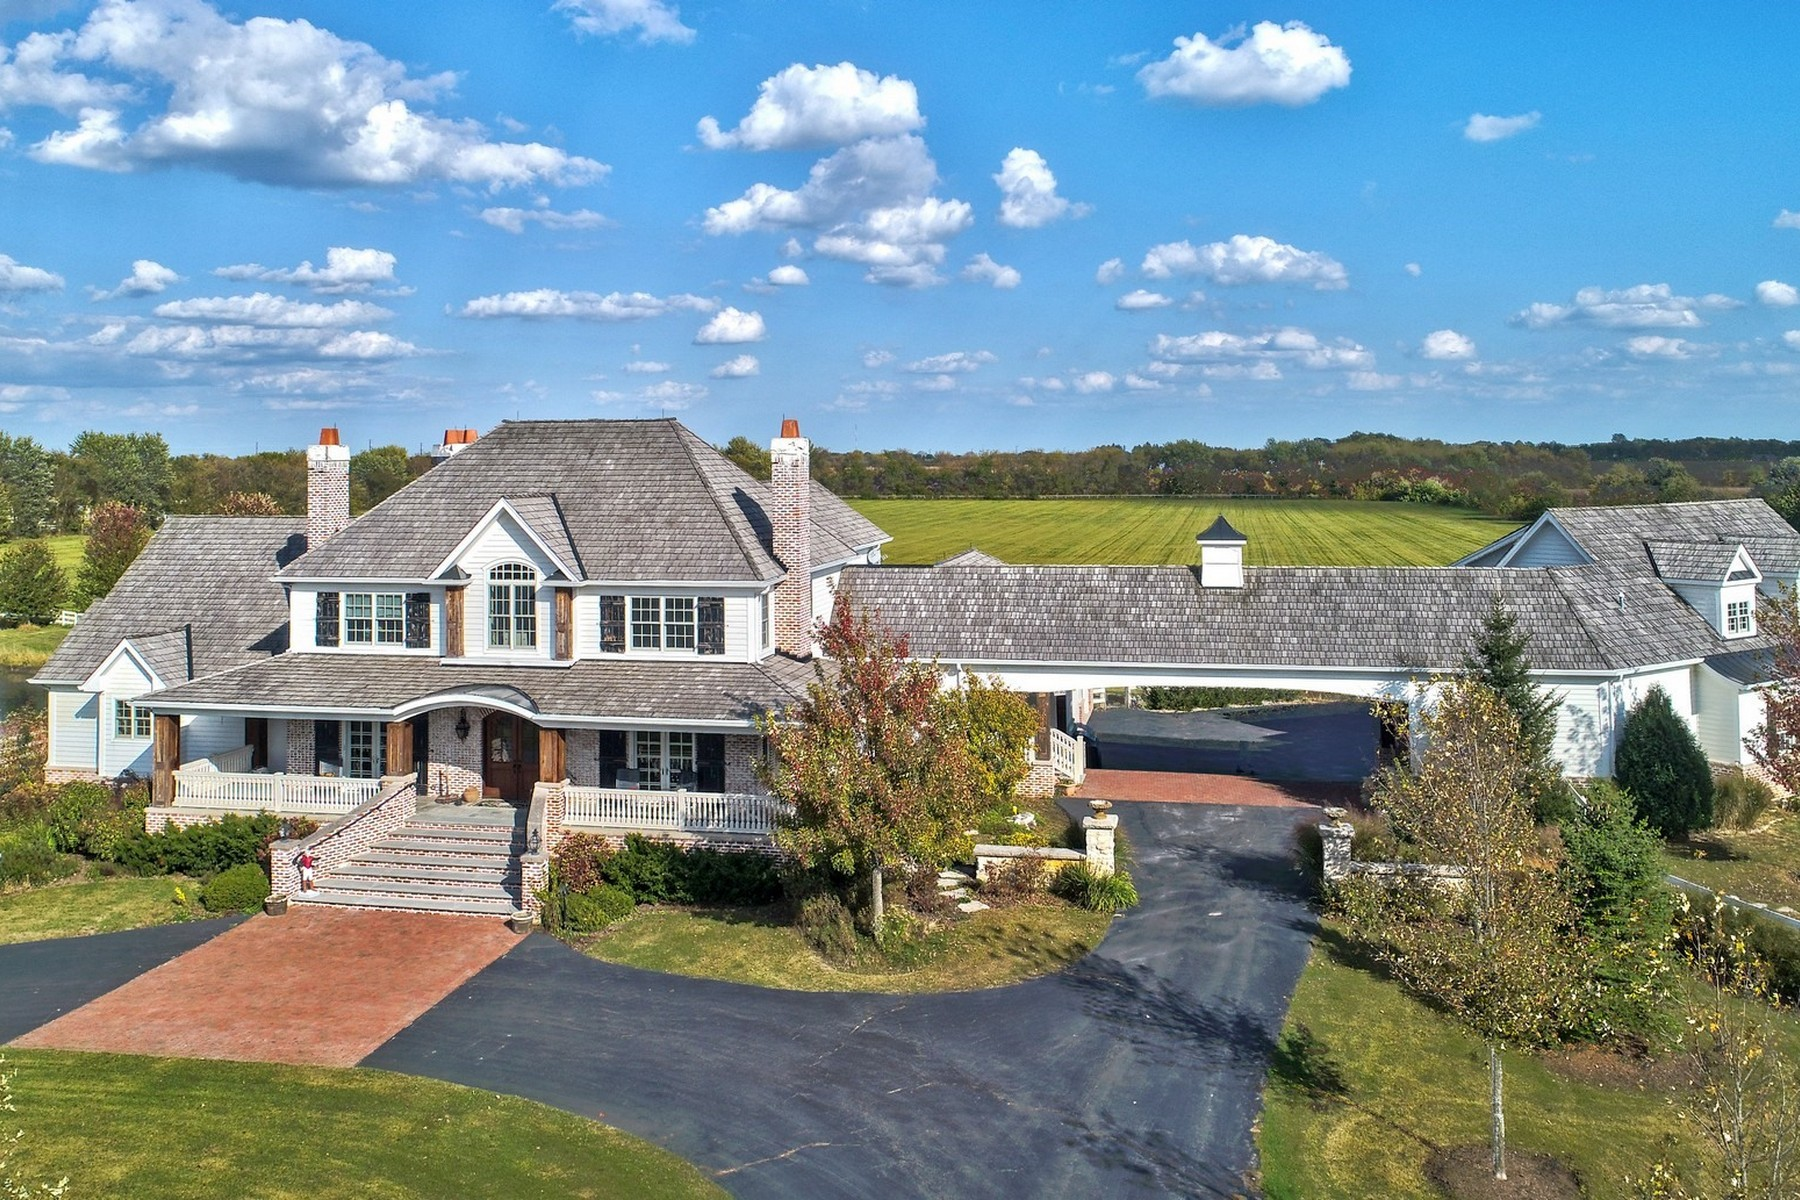 Single Family Homes for Active at Custom-Built Home on 58 Acres 9N655 Kendall Road Elgin, Illinois 60124 United States